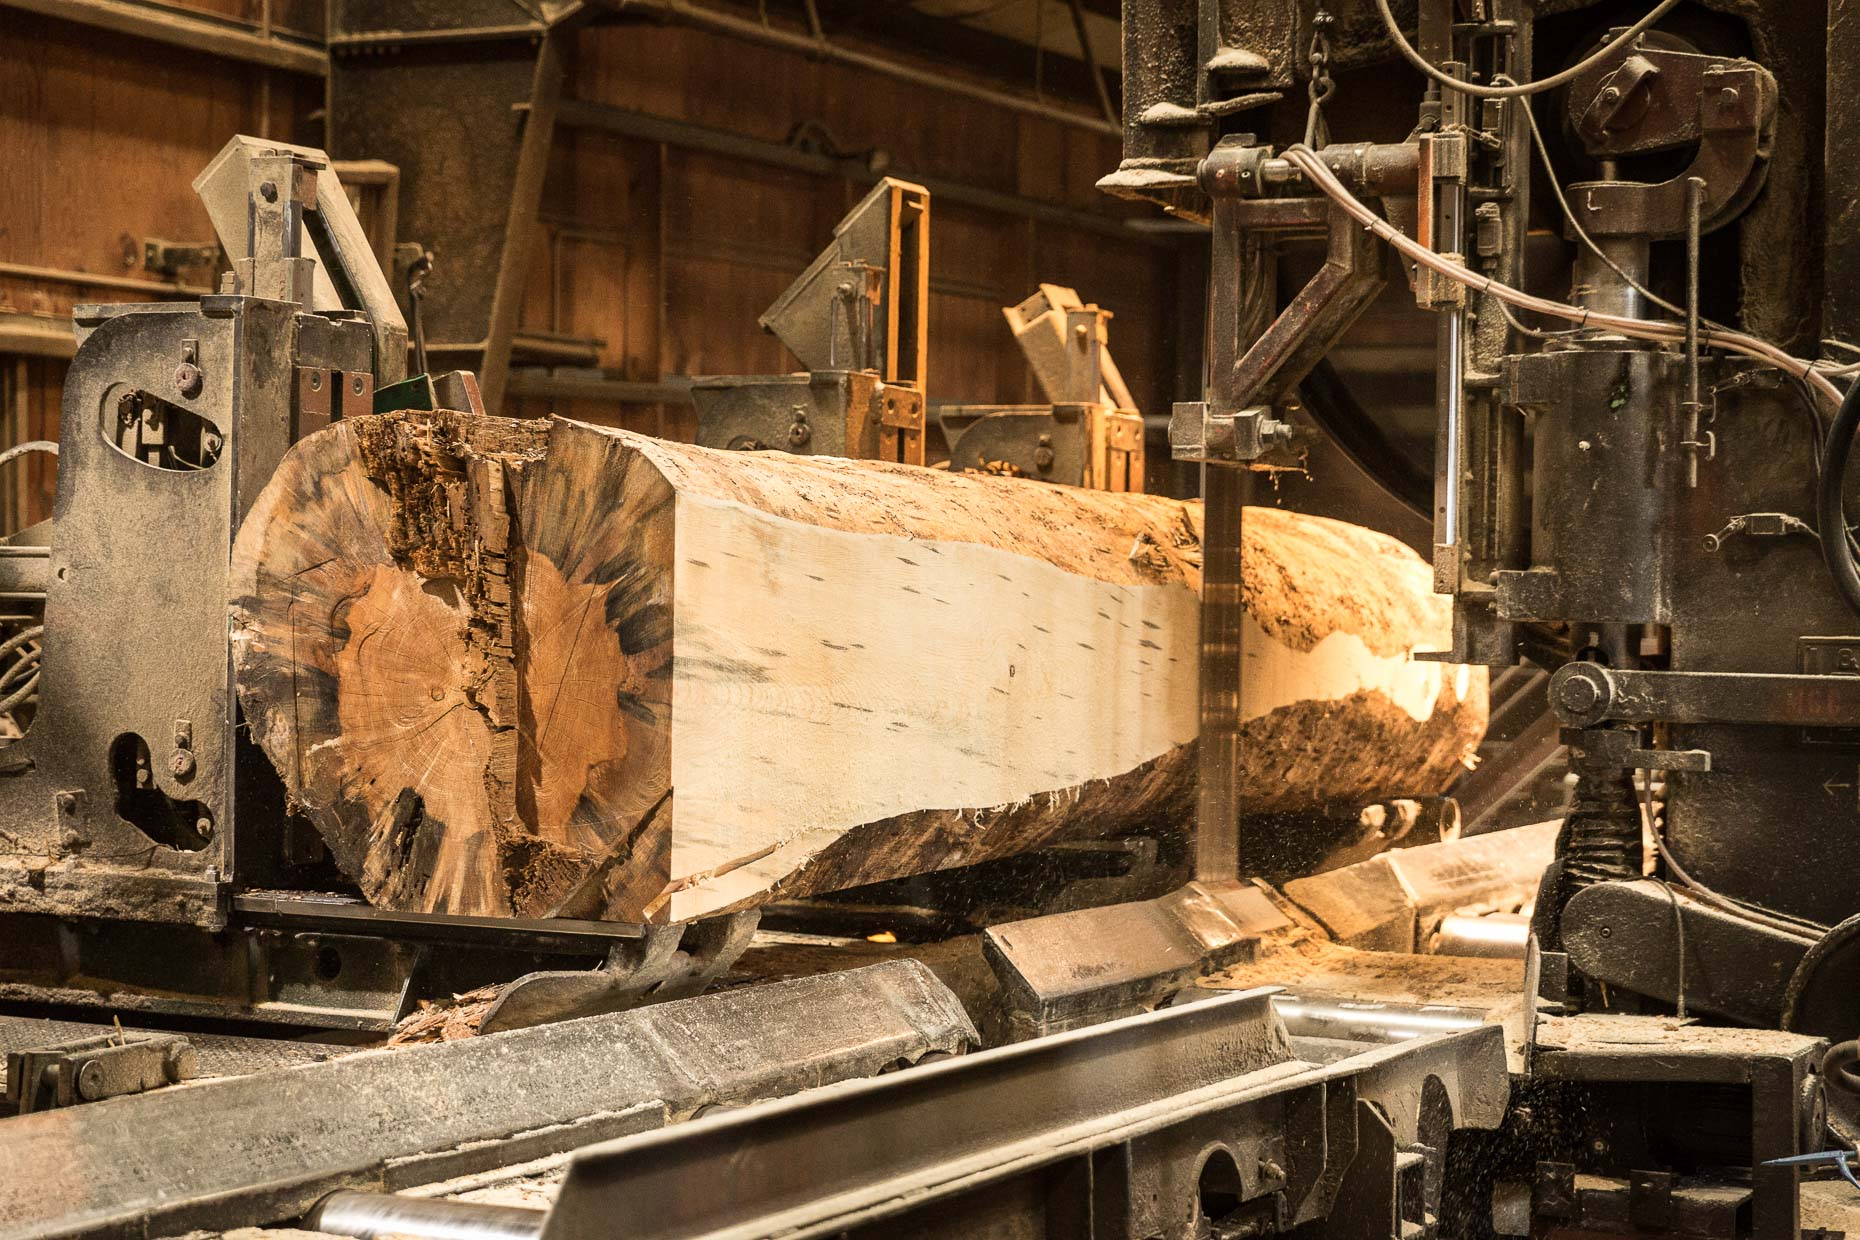 Large log being cut my automated saw in lumber mill, Malheur Lumber Company mill in John Day, Oregon by David Zaitz.